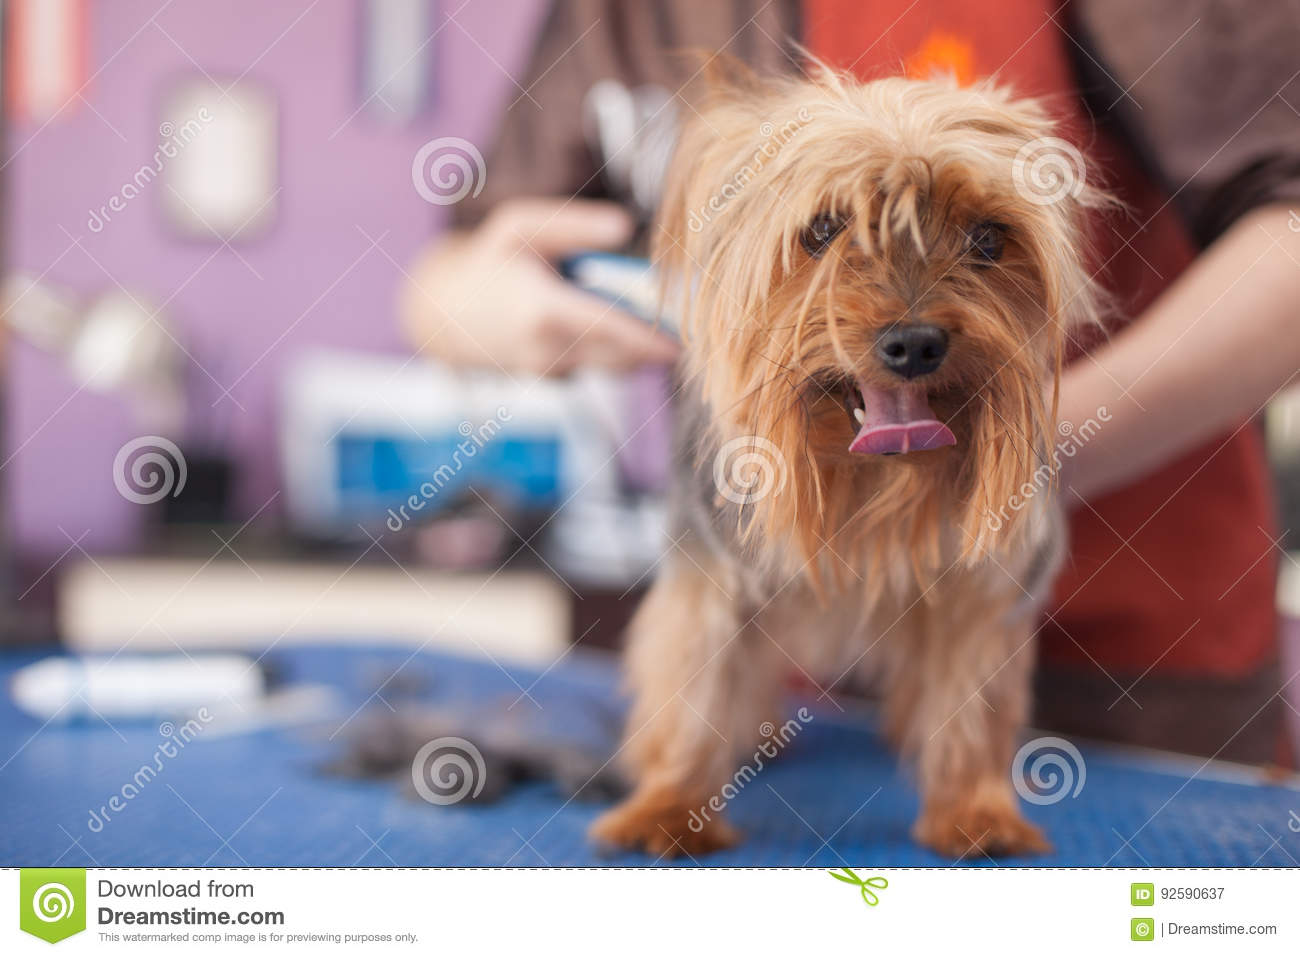 Salon Grooming Haircut Yorkshire Terrier Stock Image Image Of